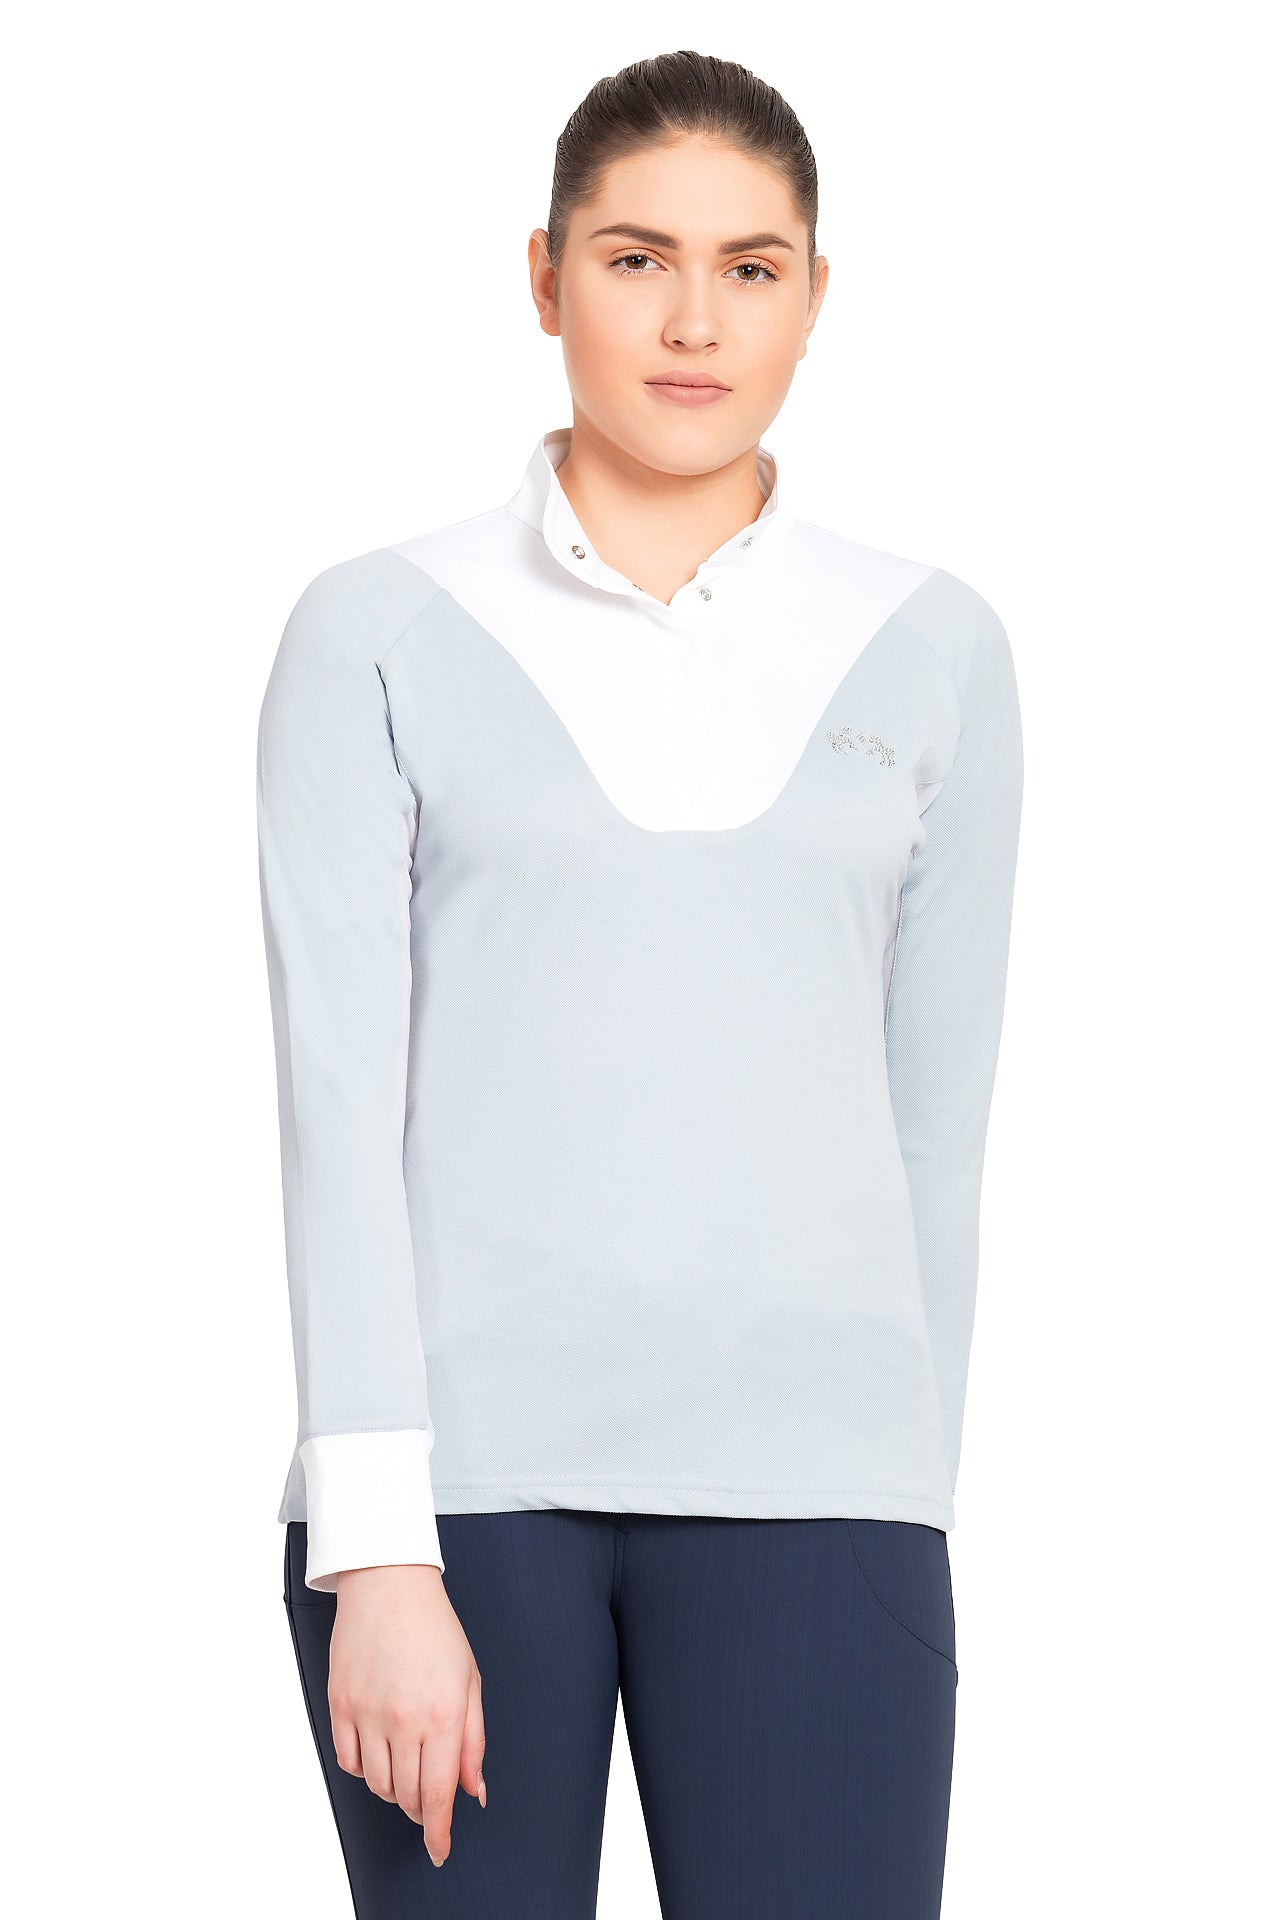 Ladies Maggie Long Sleeve Show Shirt - Equine Couture - Breeches.com